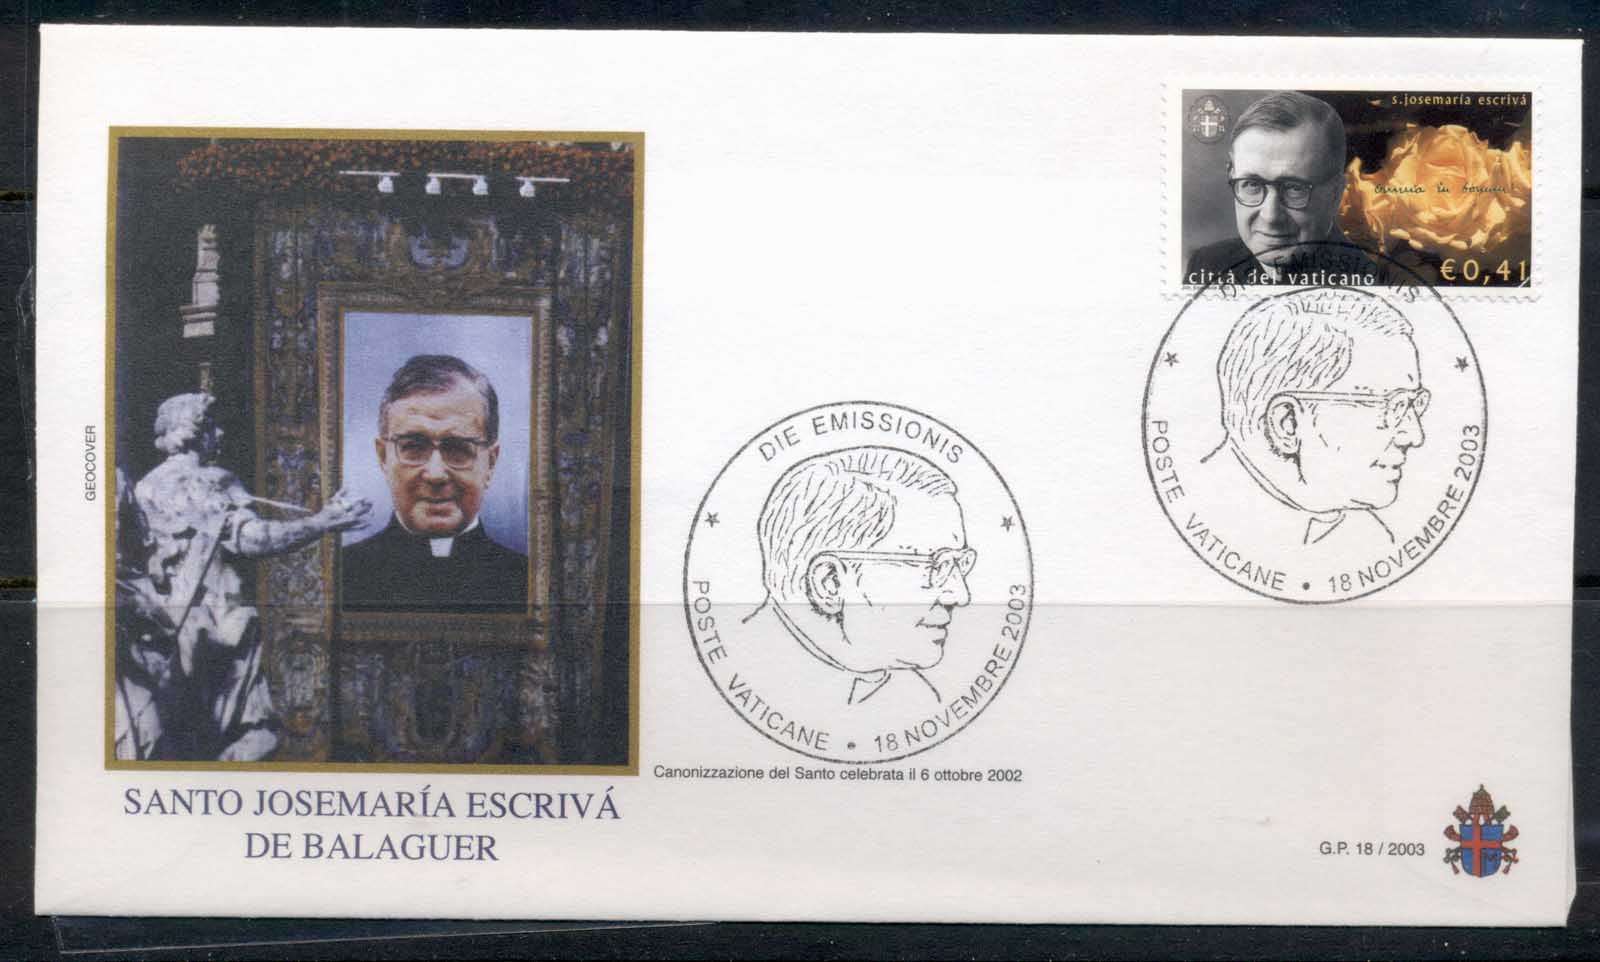 Vatican 2003 Canonization of Balaguer FDC - Click Image to Close